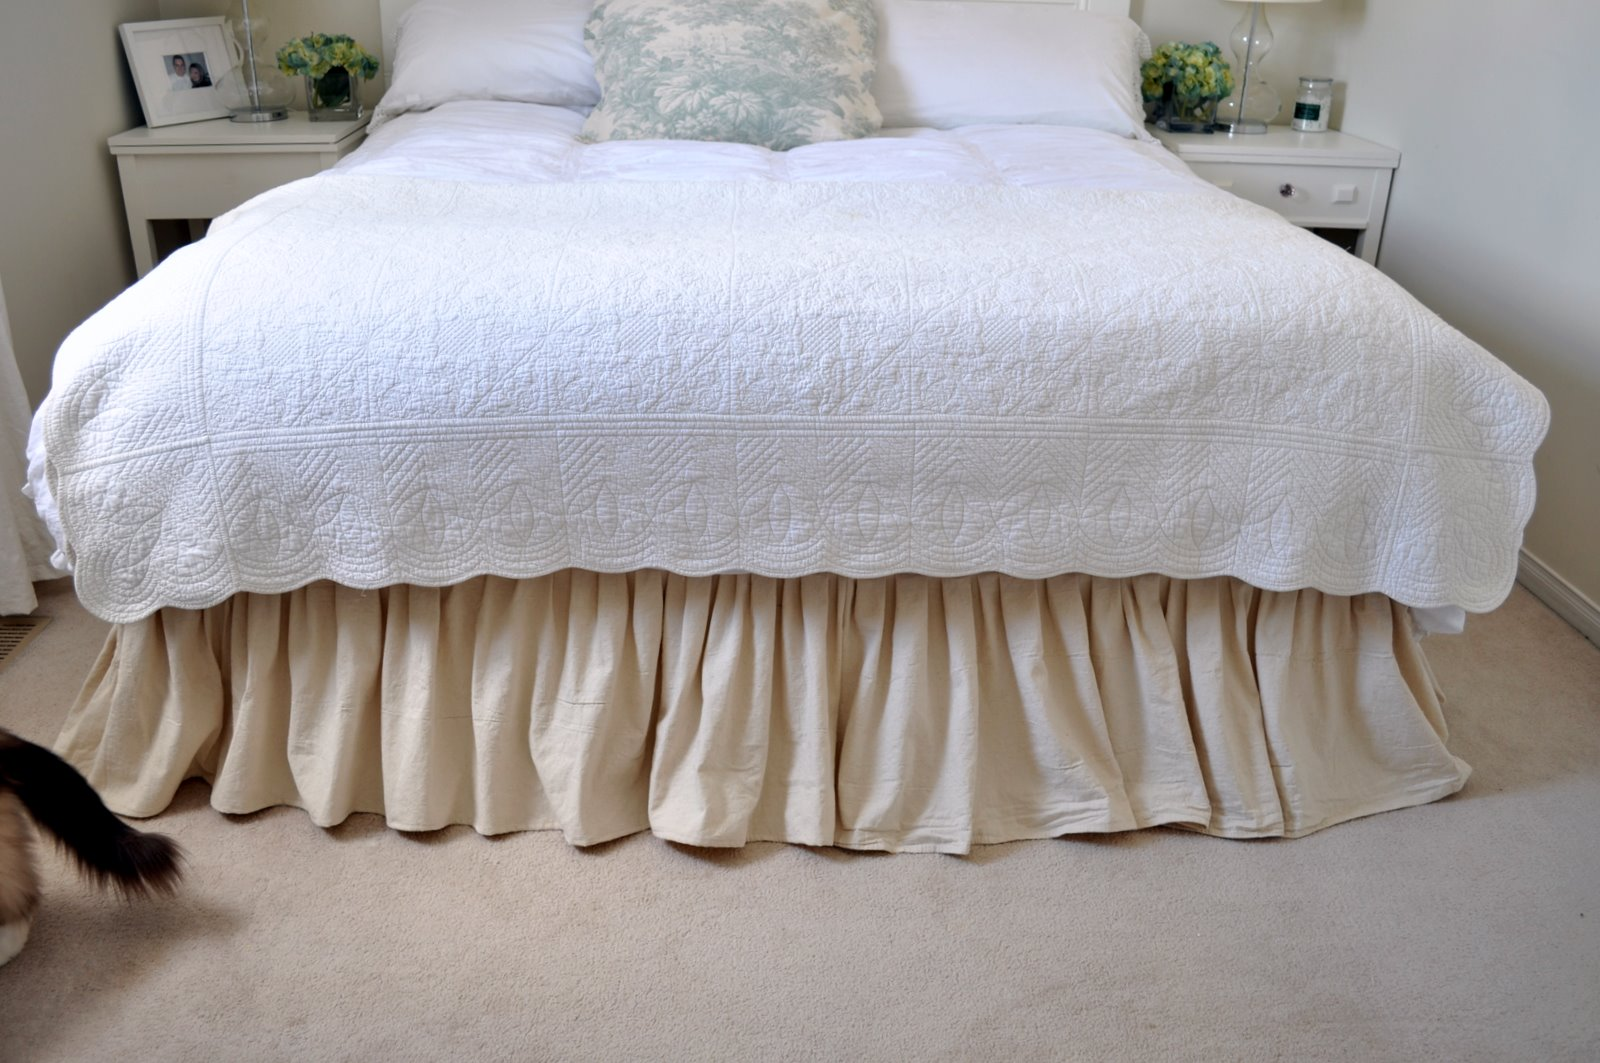 Drop Cloth Bed Skirt.Mini Makeover Part 2 Dropcloth Bedskirt Kim Power Style